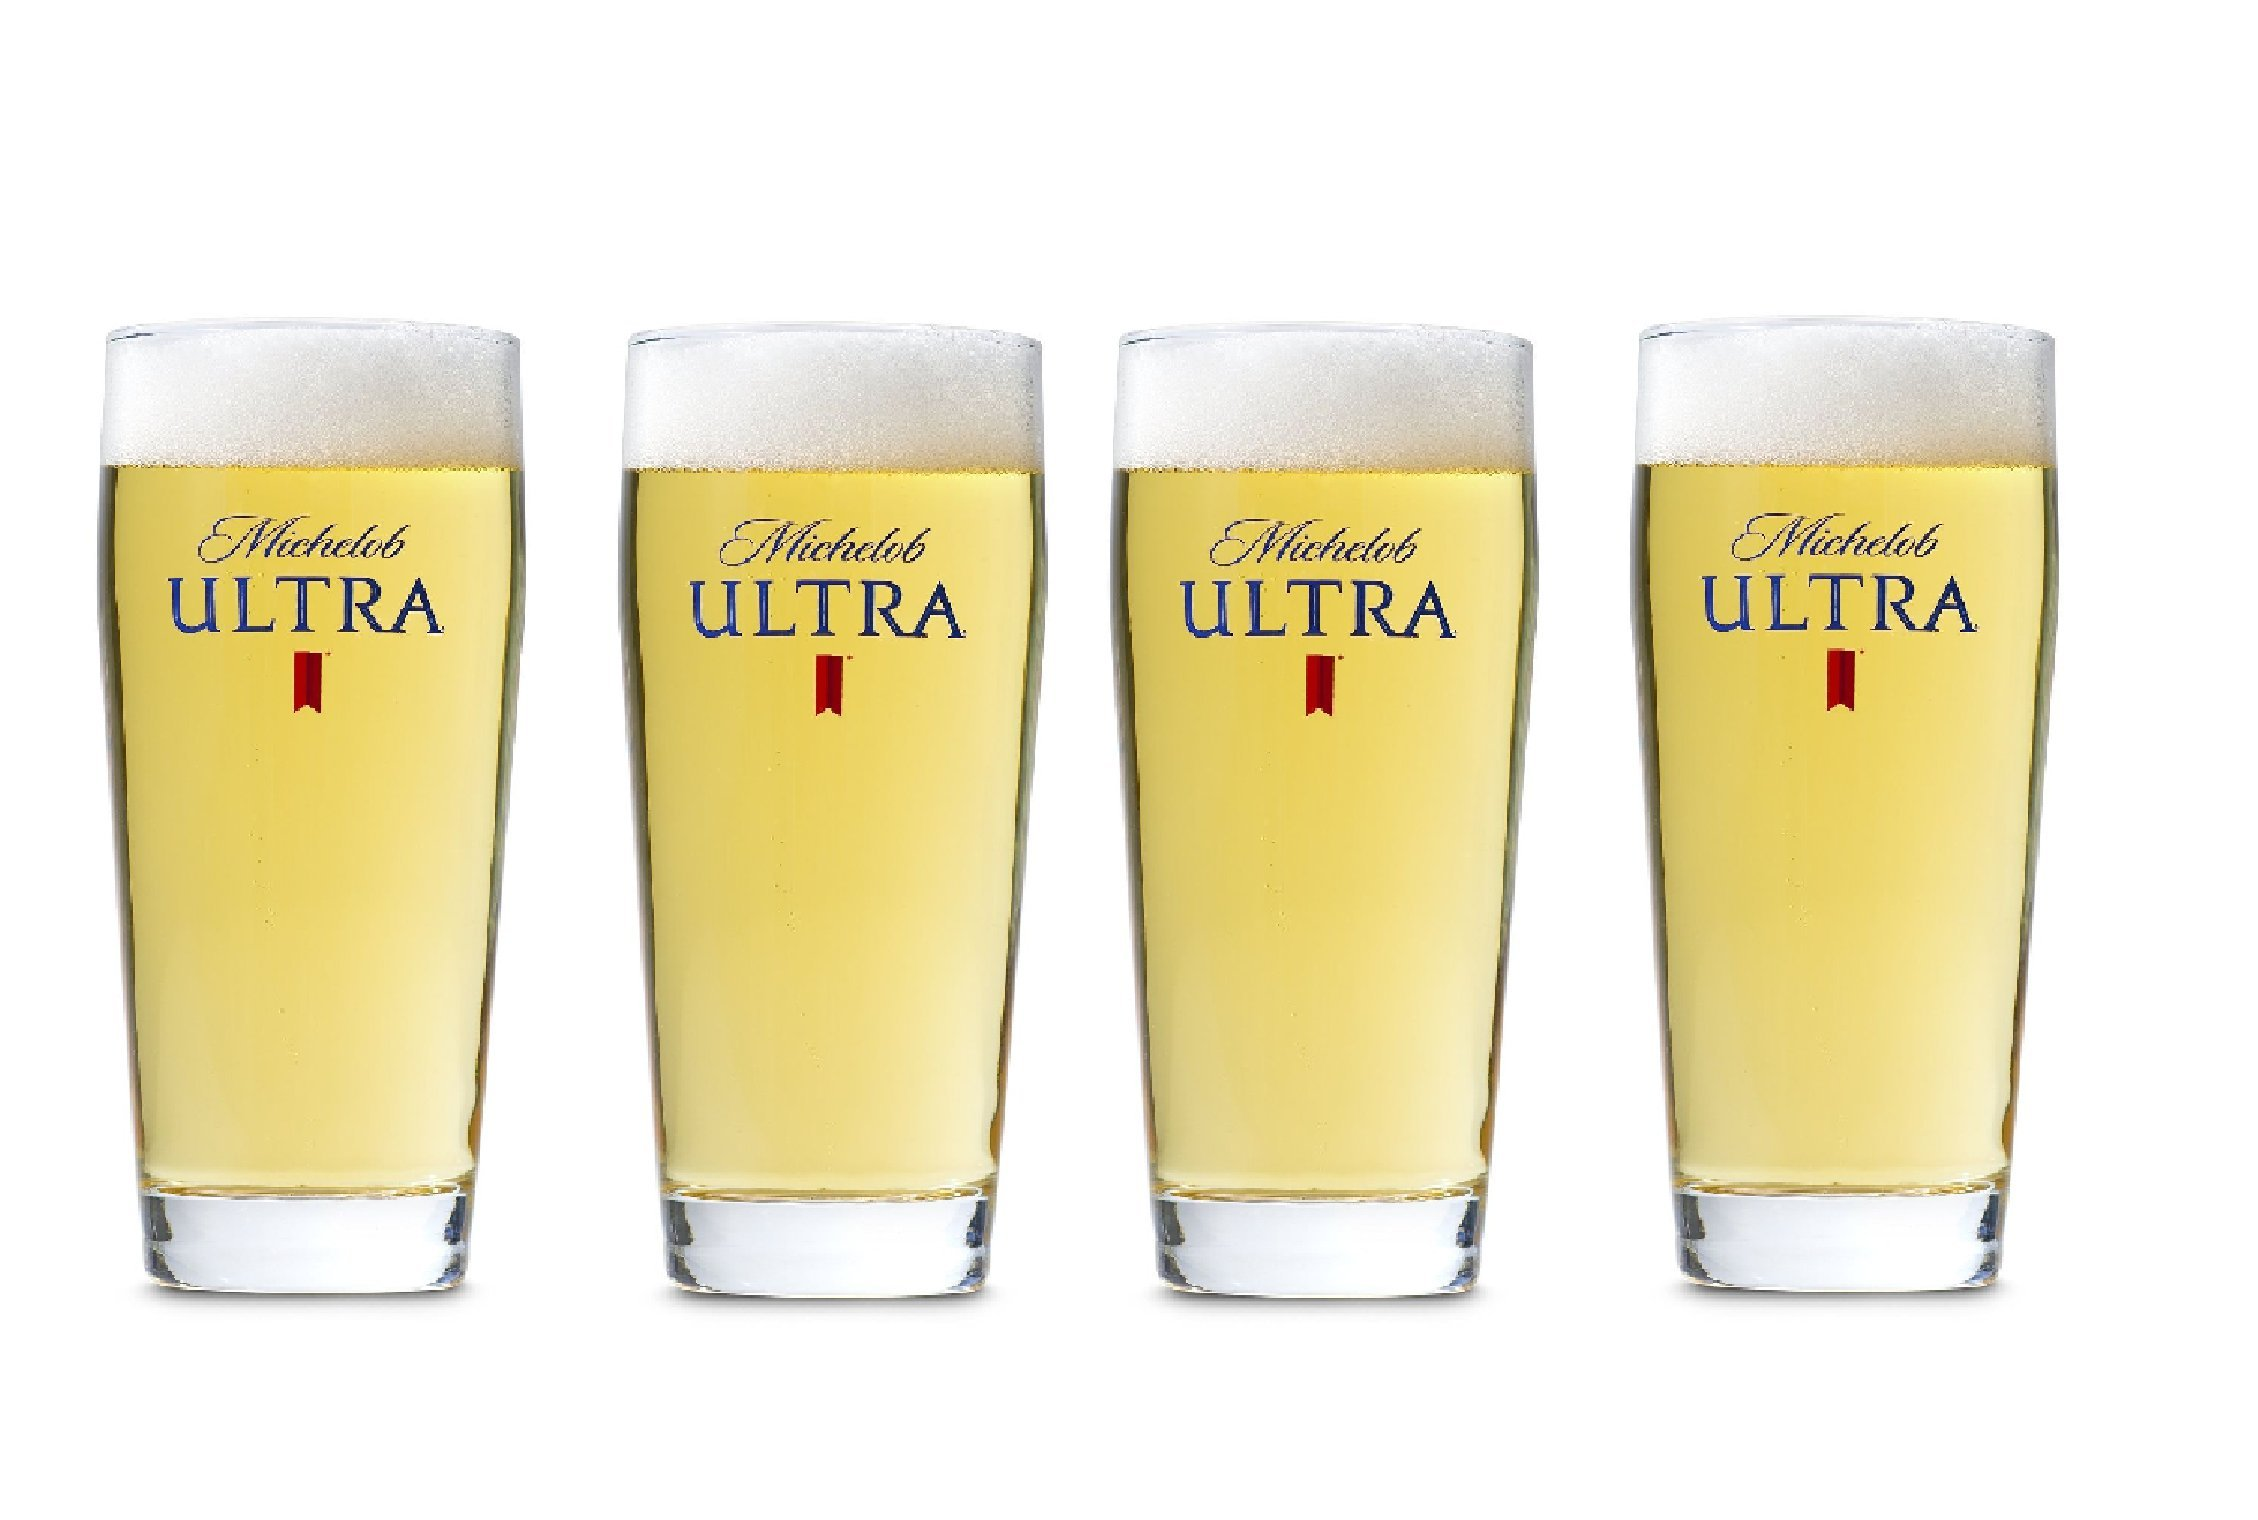 Michelob Ultra 4-Pack Willi Becher Glasses